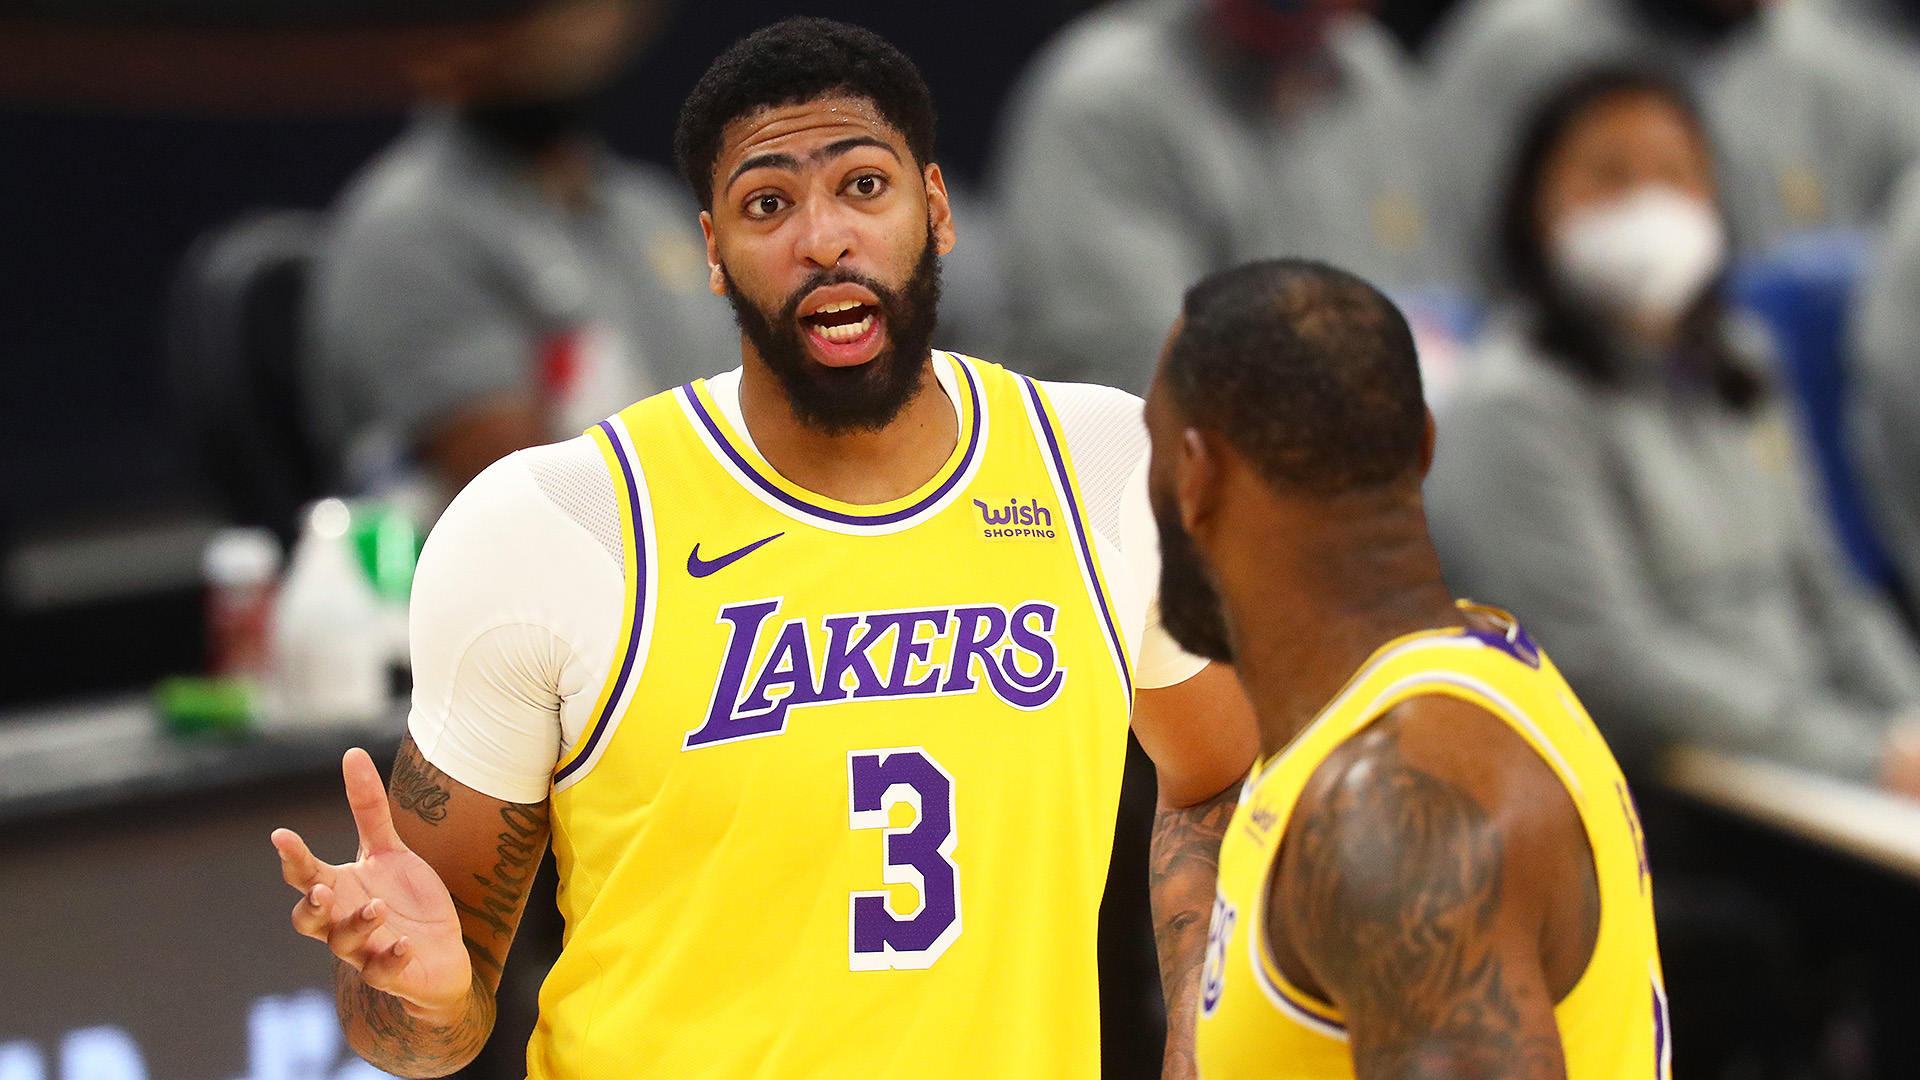 Could Play-In spot help Lakers rediscover their mojo?